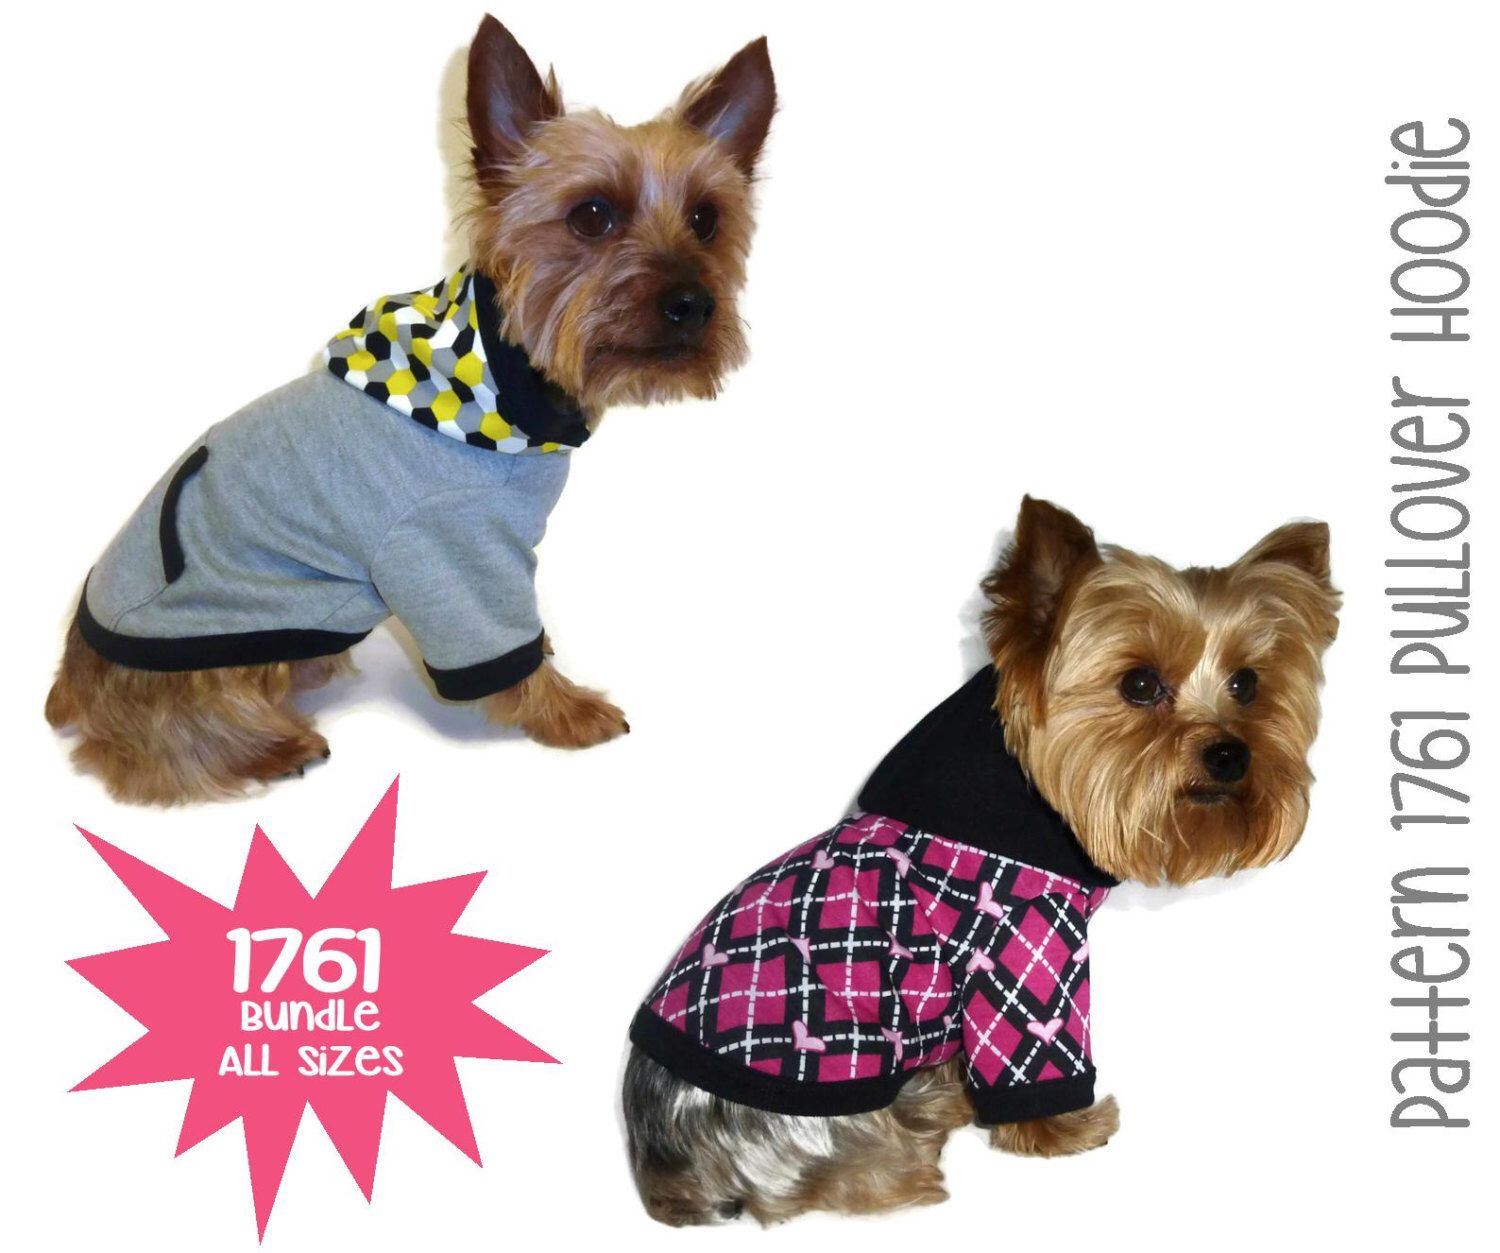 Dog hoodie pattern 1761 bundle all sizes dog clothes sewing dog hoodie pattern 1761 bundle all sizes dog clothes sewing pattern dog jacket jeuxipadfo Image collections